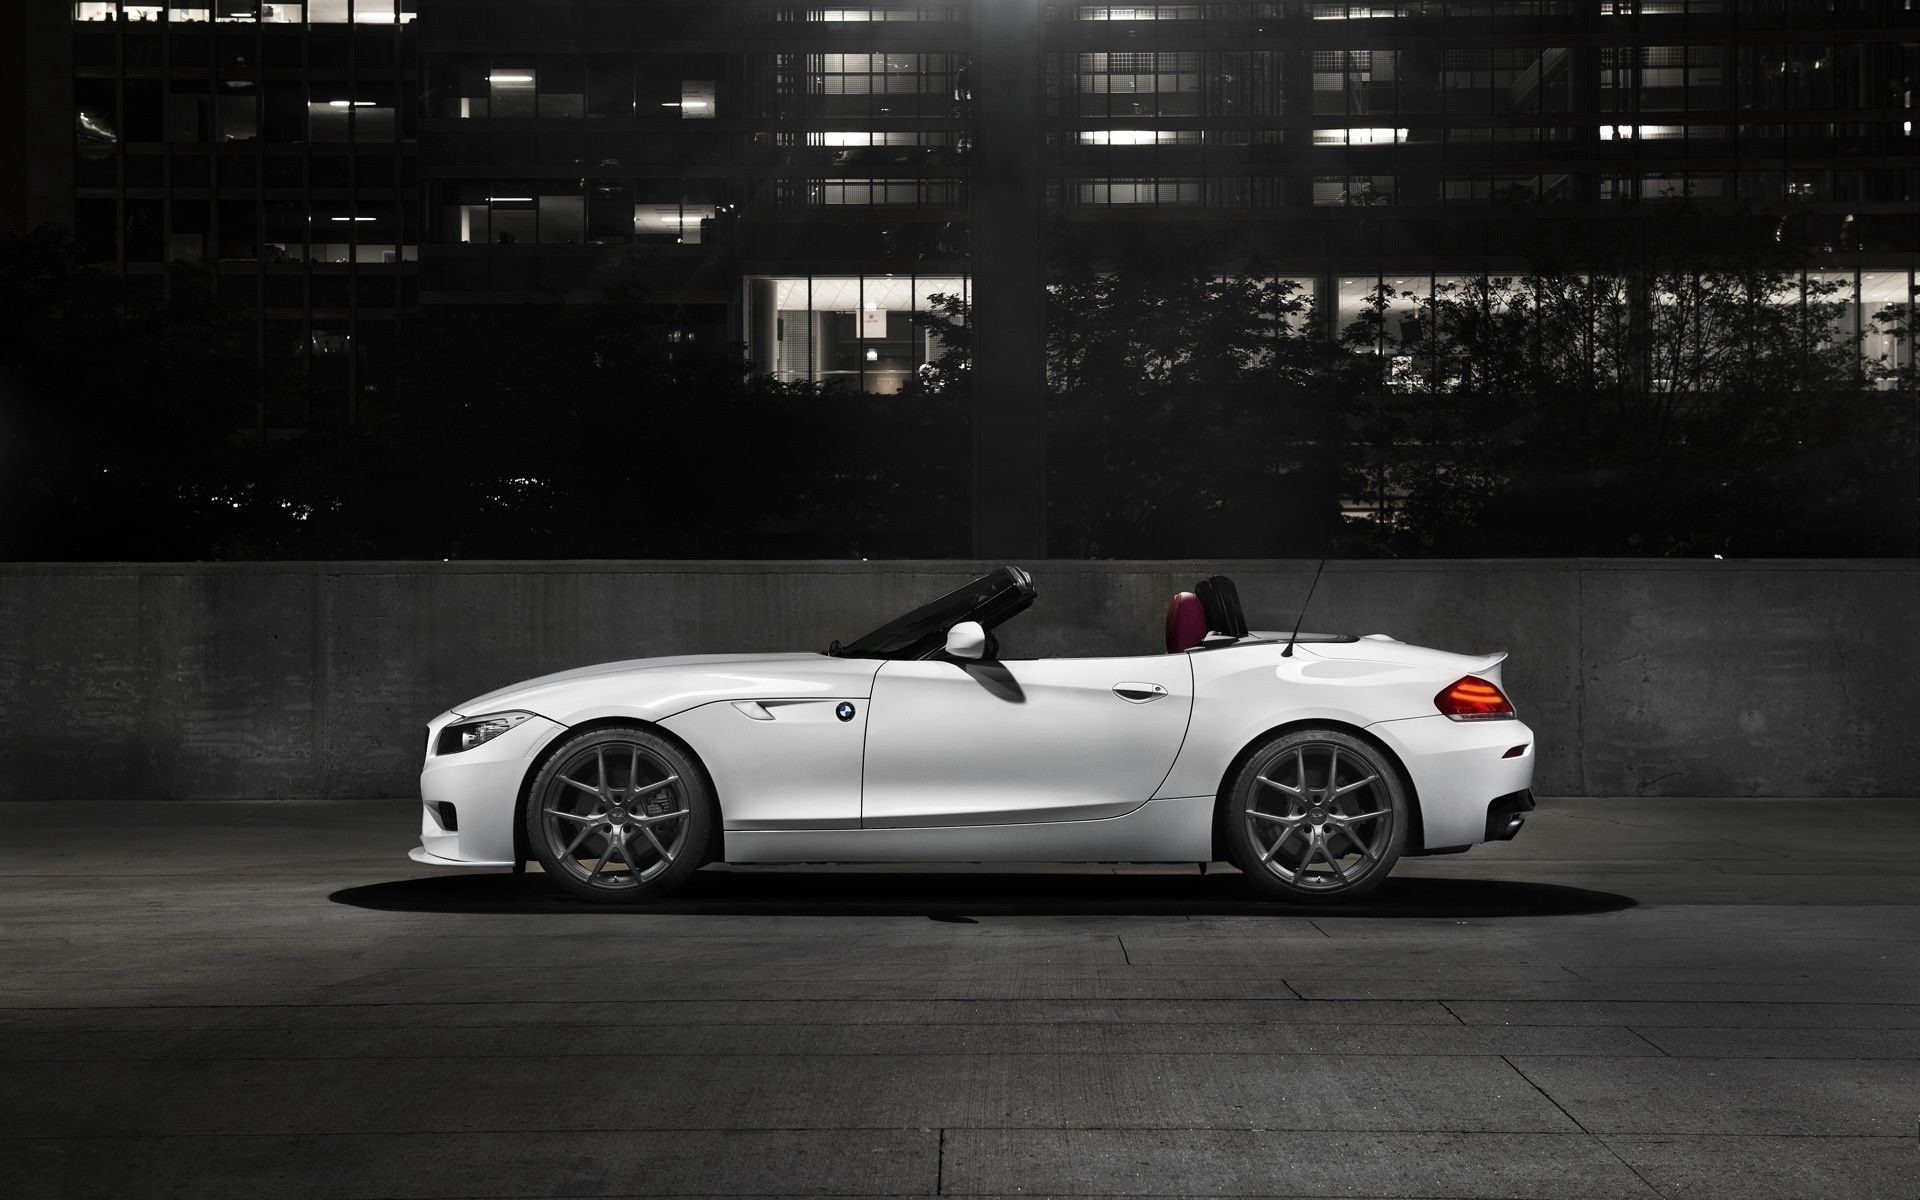 82809 download wallpaper Cars, Roadster, Auto, Bmw, Car, Bmw Z4 screensavers and pictures for free